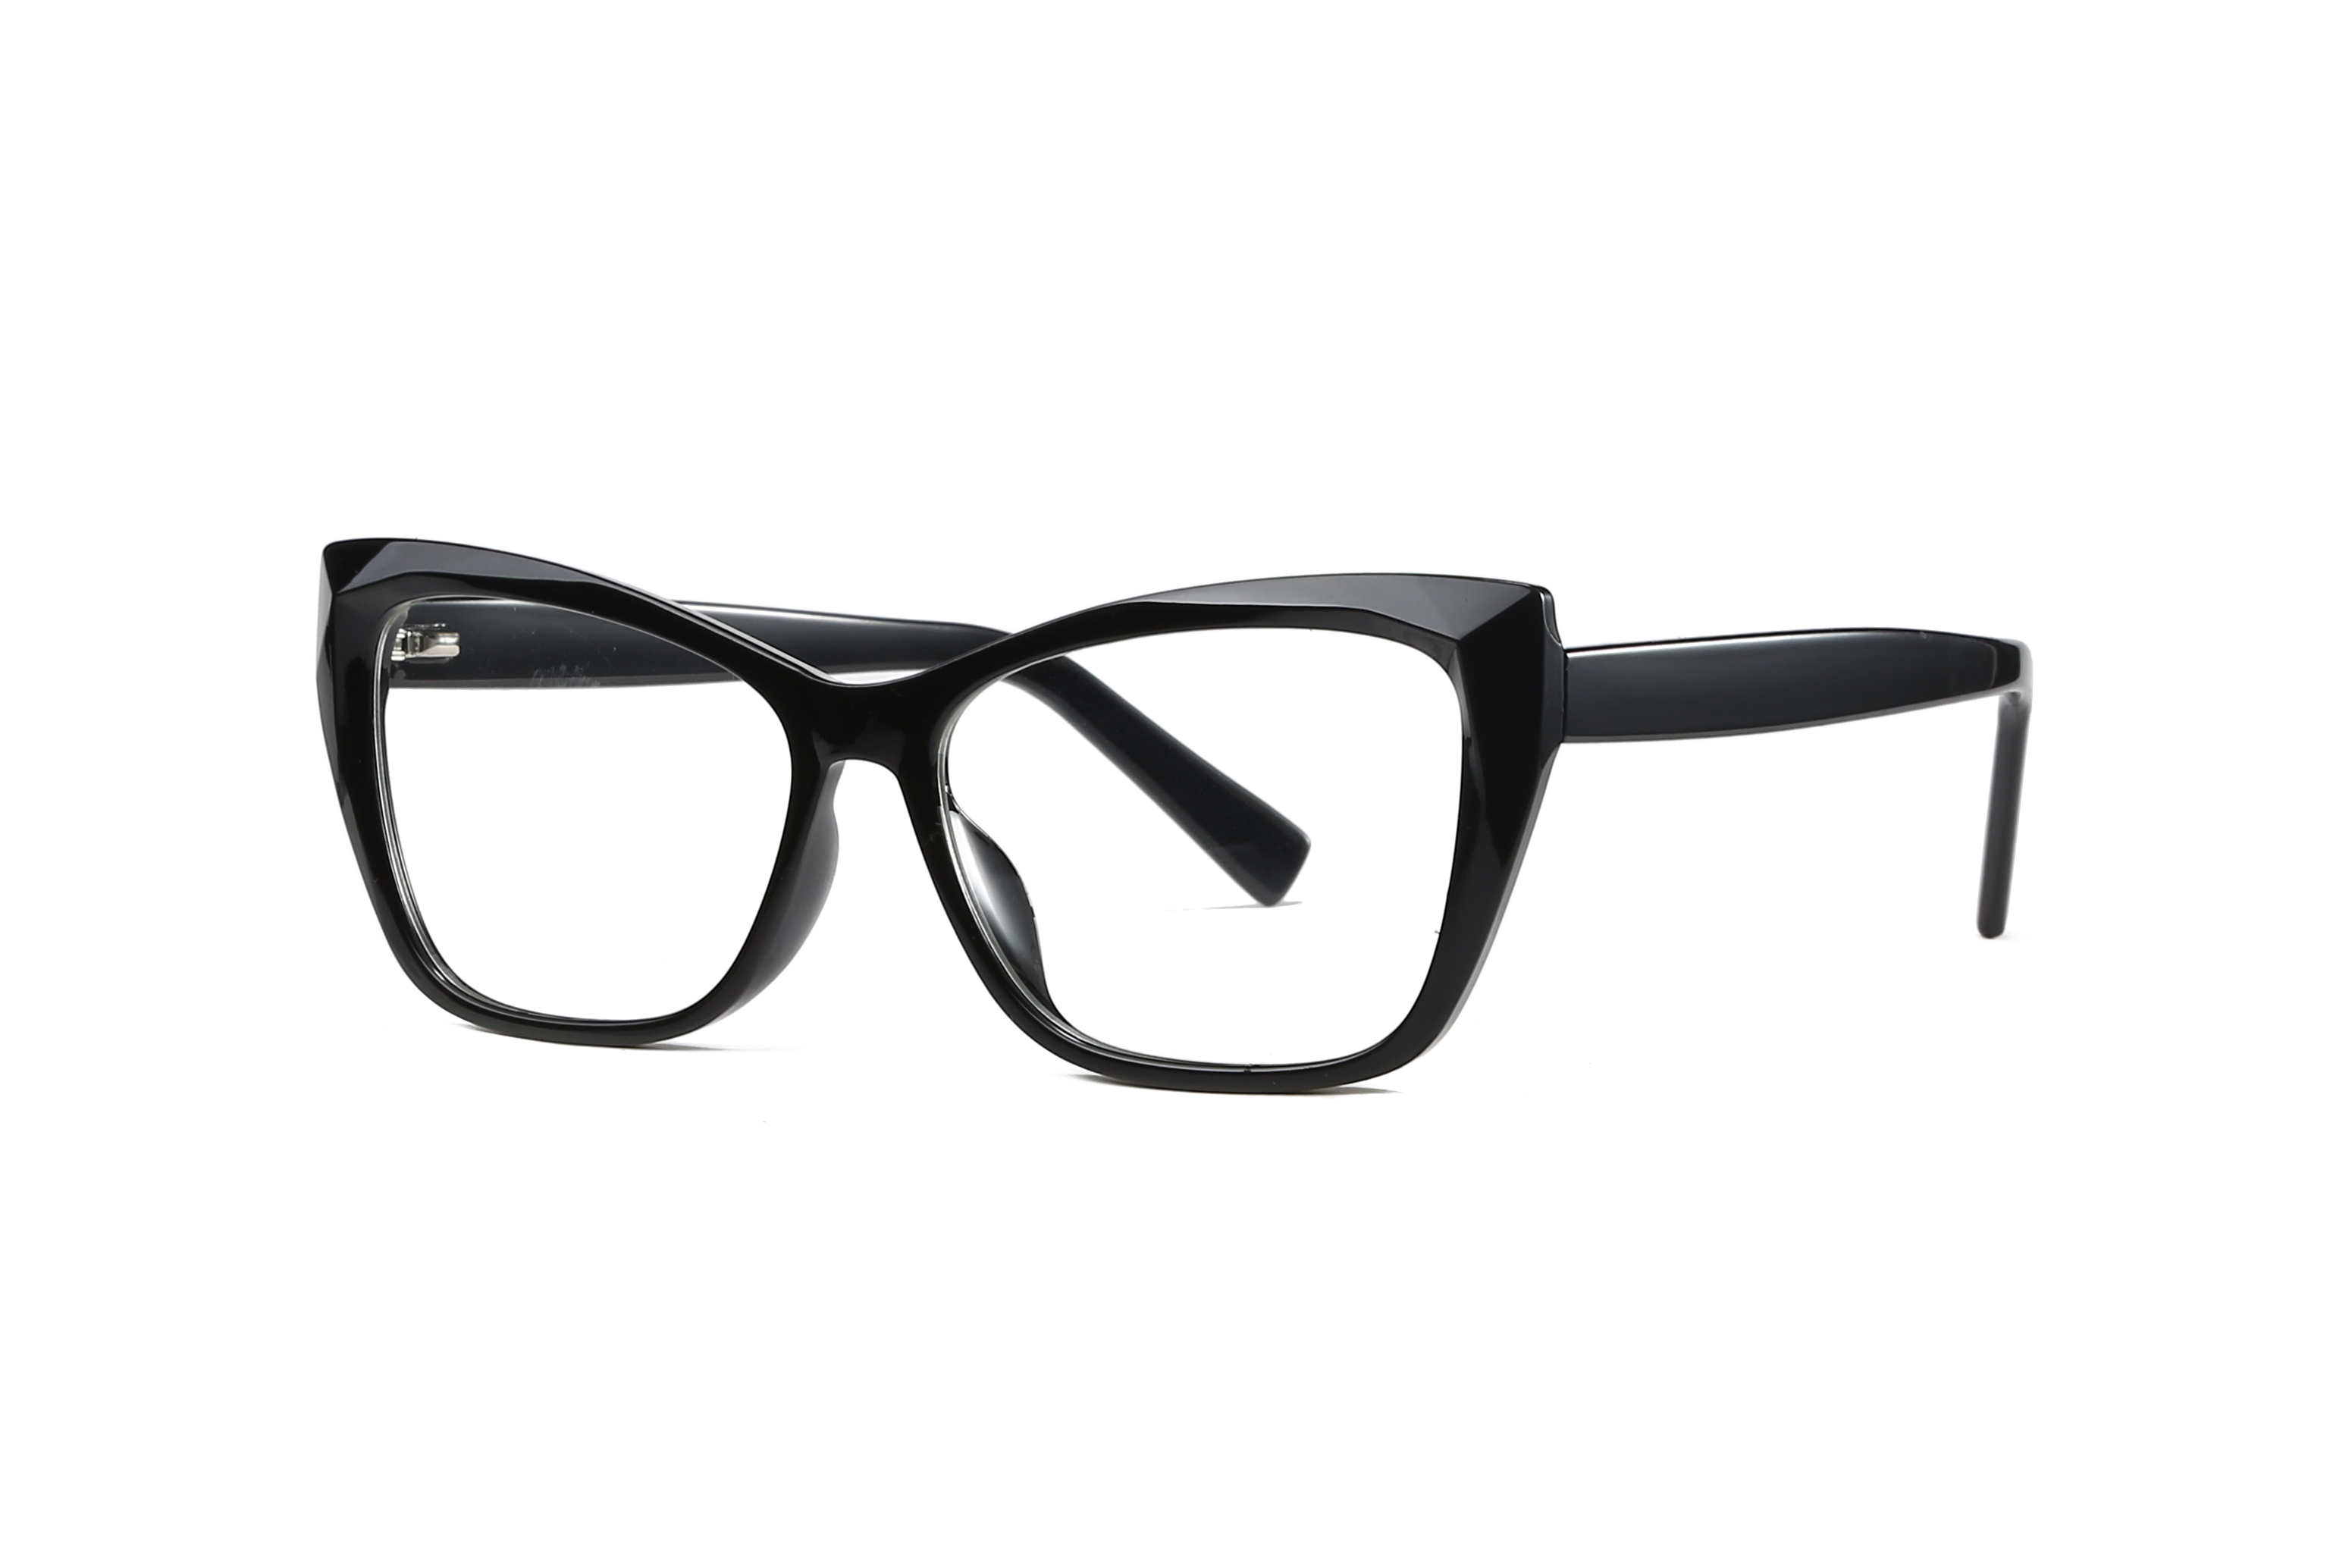 eyeglasses frames for women and men